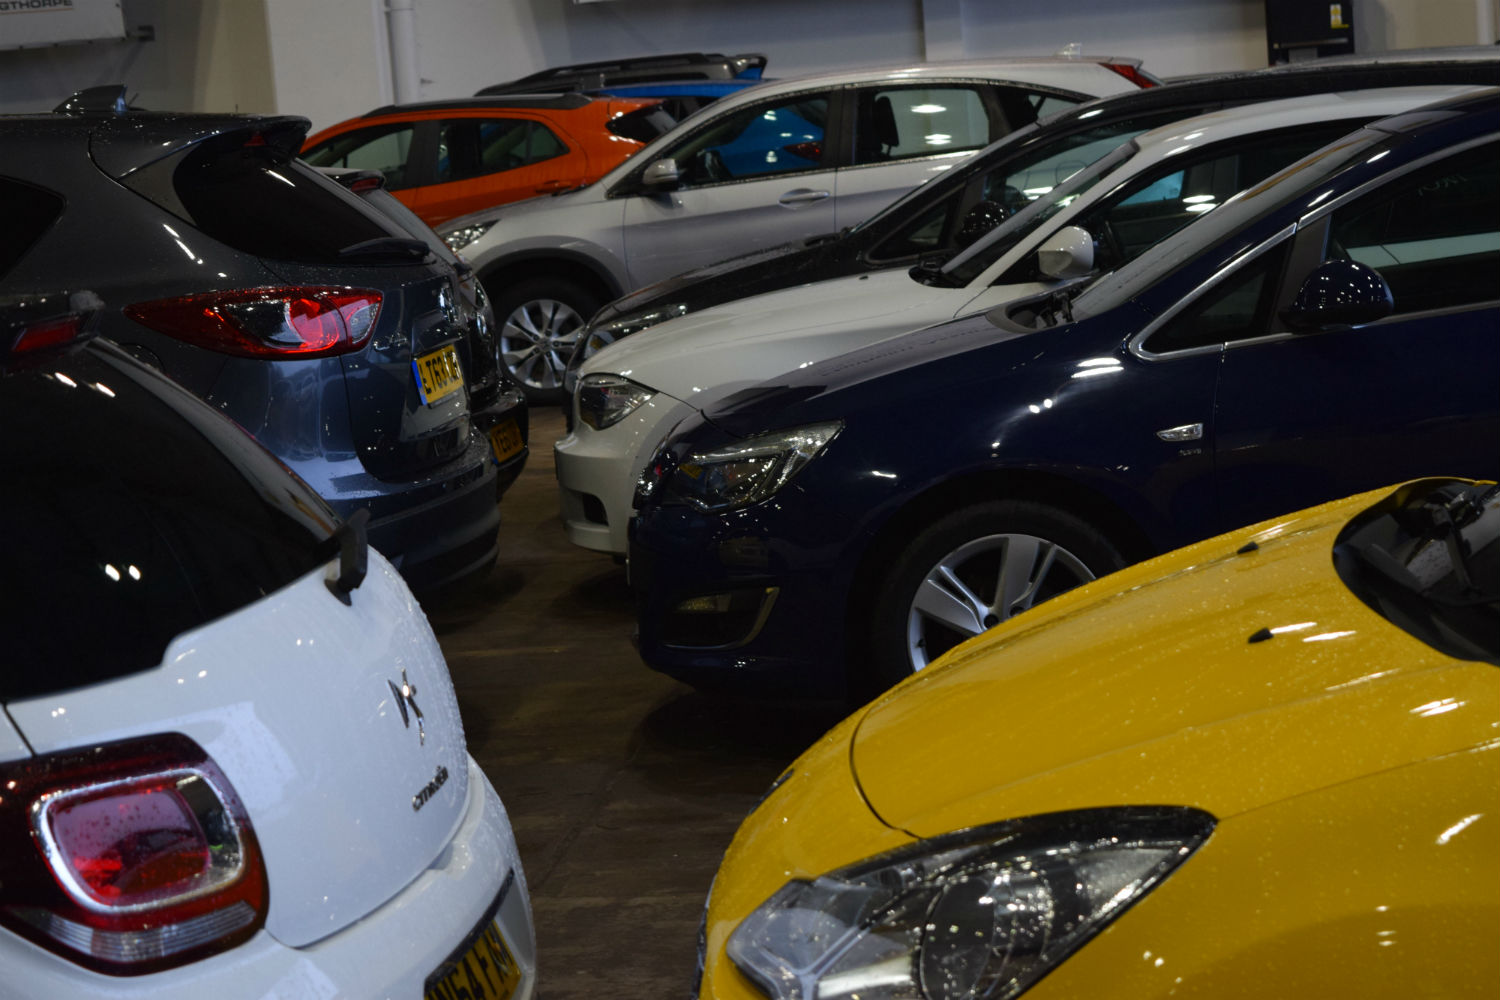 Vehicles available at Manheim and Motors.co.uk